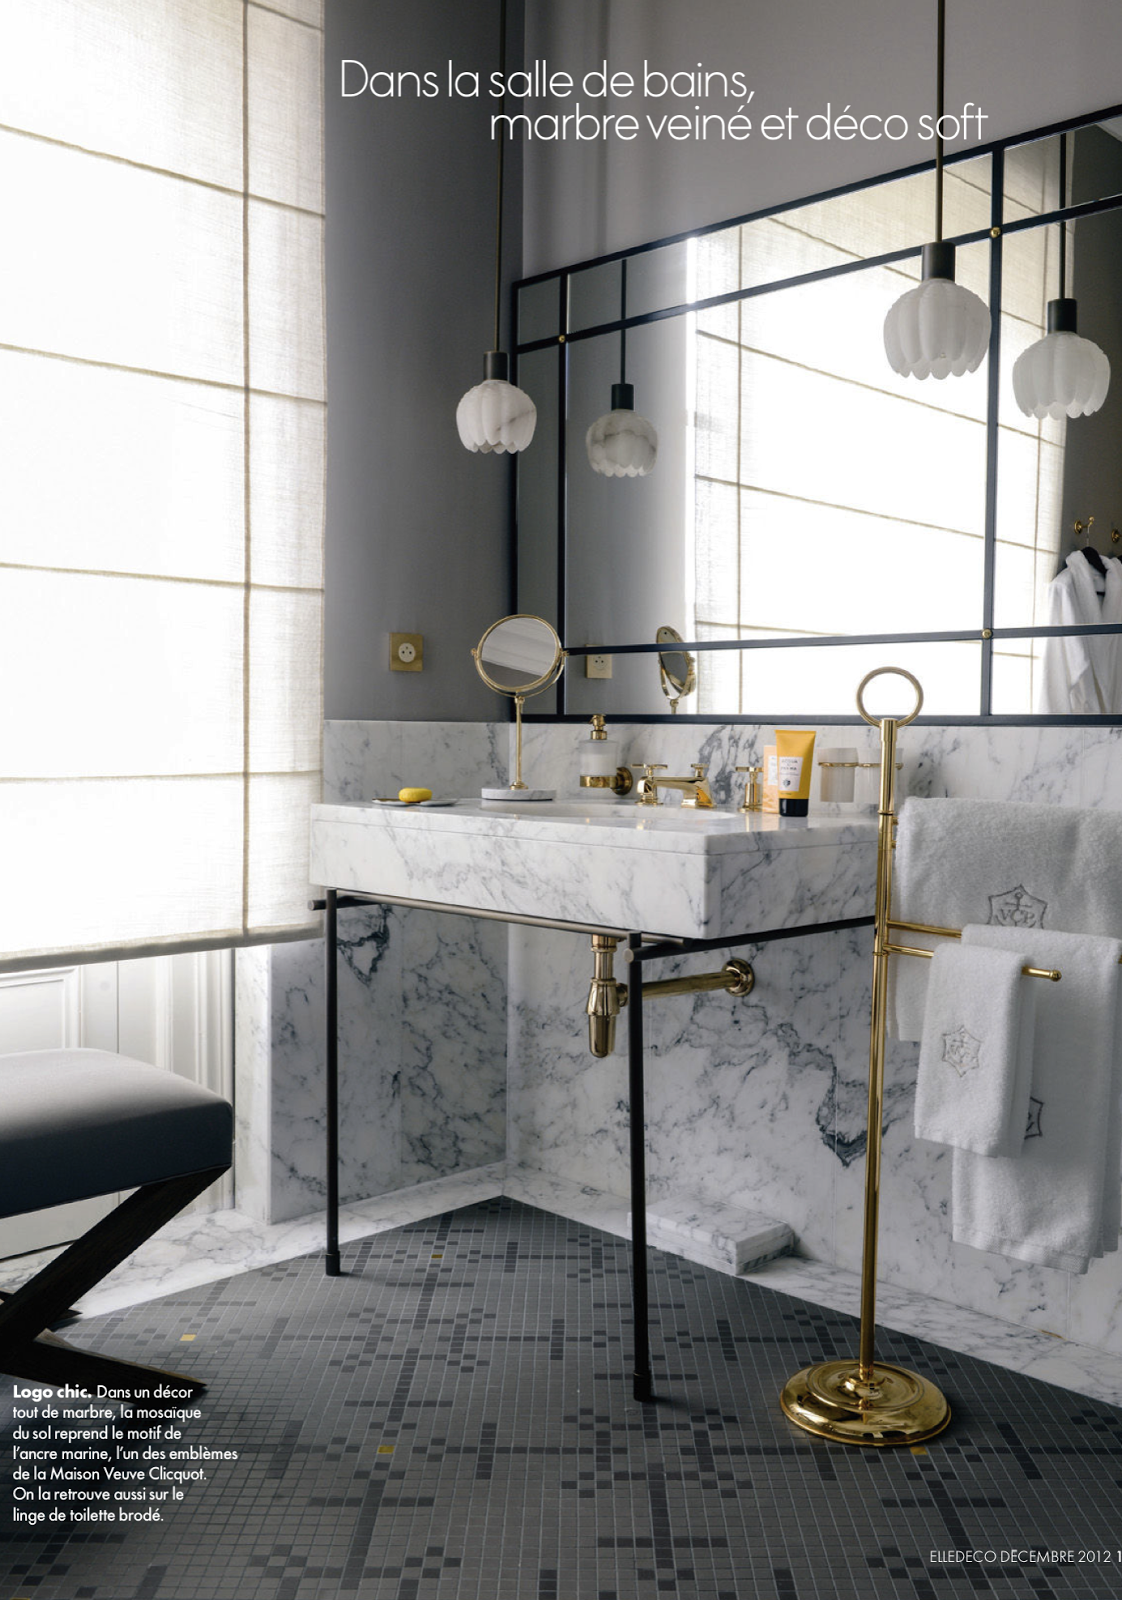 EllDec313____Jurnalik.Ru. Elle Decor MagazineMarble BathroomsBathroom ...